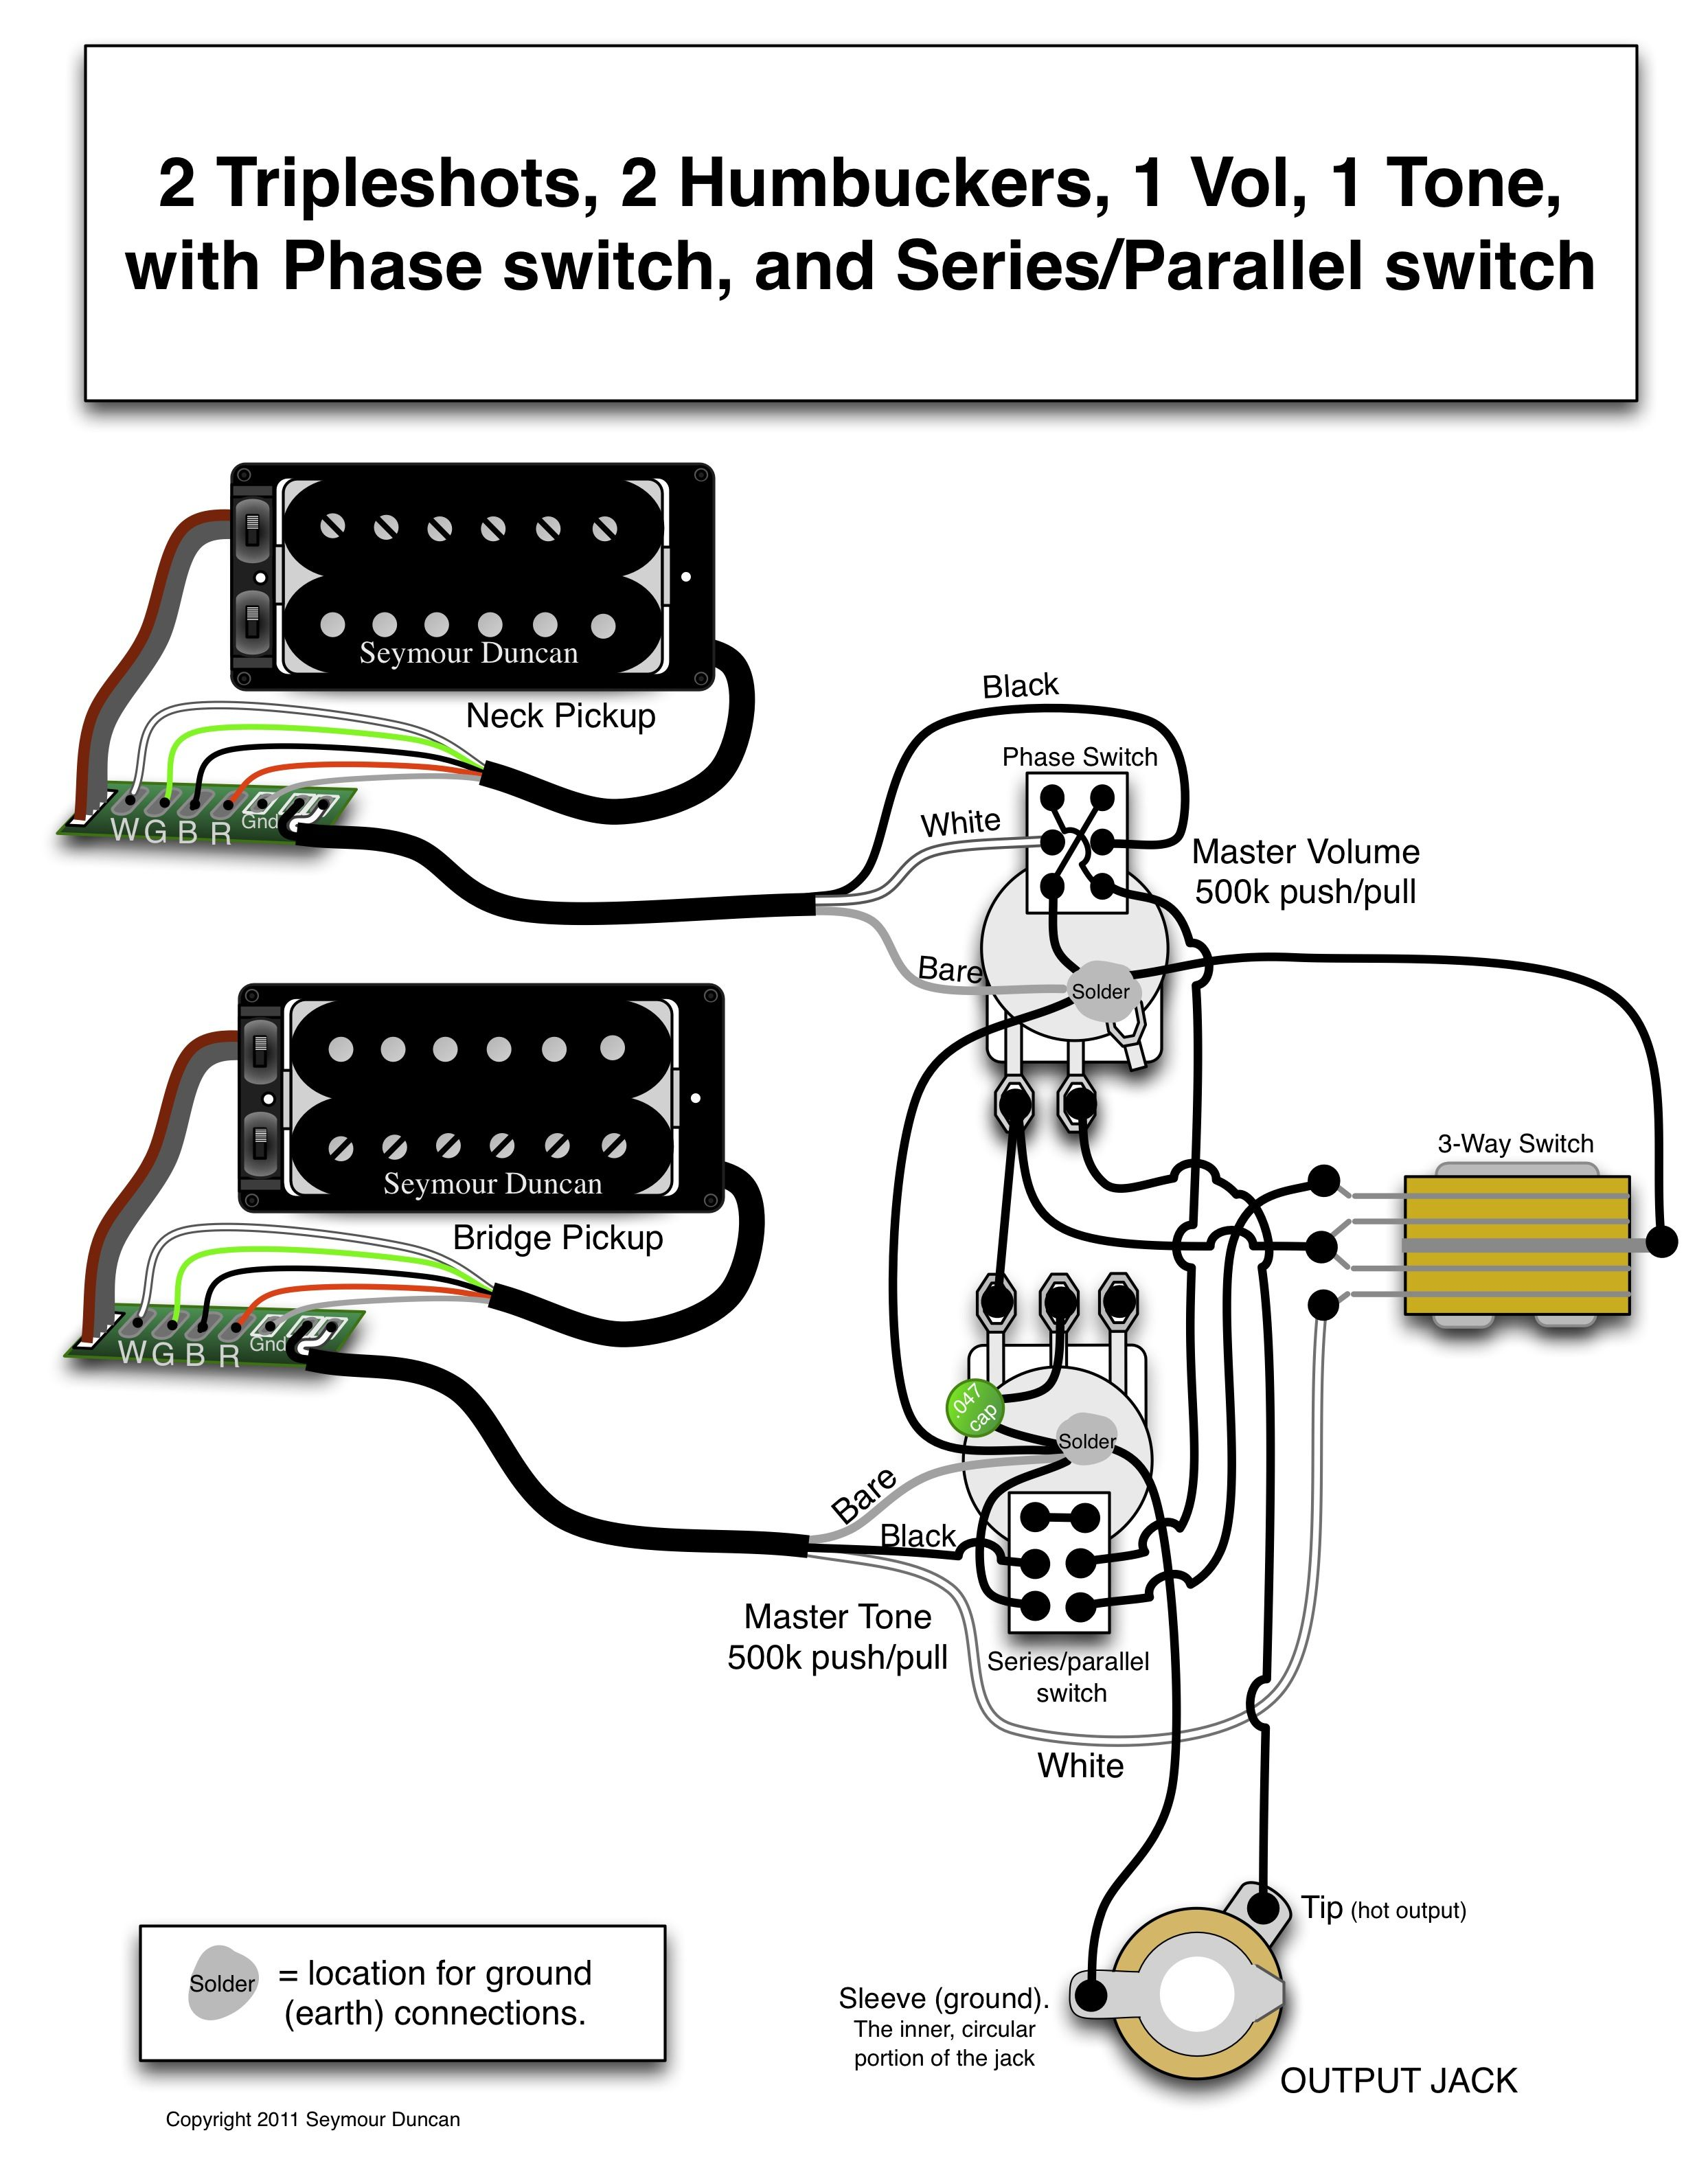 11e7a4ce932088841833425d14ebd2ea seymour duncan wiring diagram 2 triple shots, 2 humbuckers, 1 seymour duncan triple shot wiring diagram at eliteediting.co